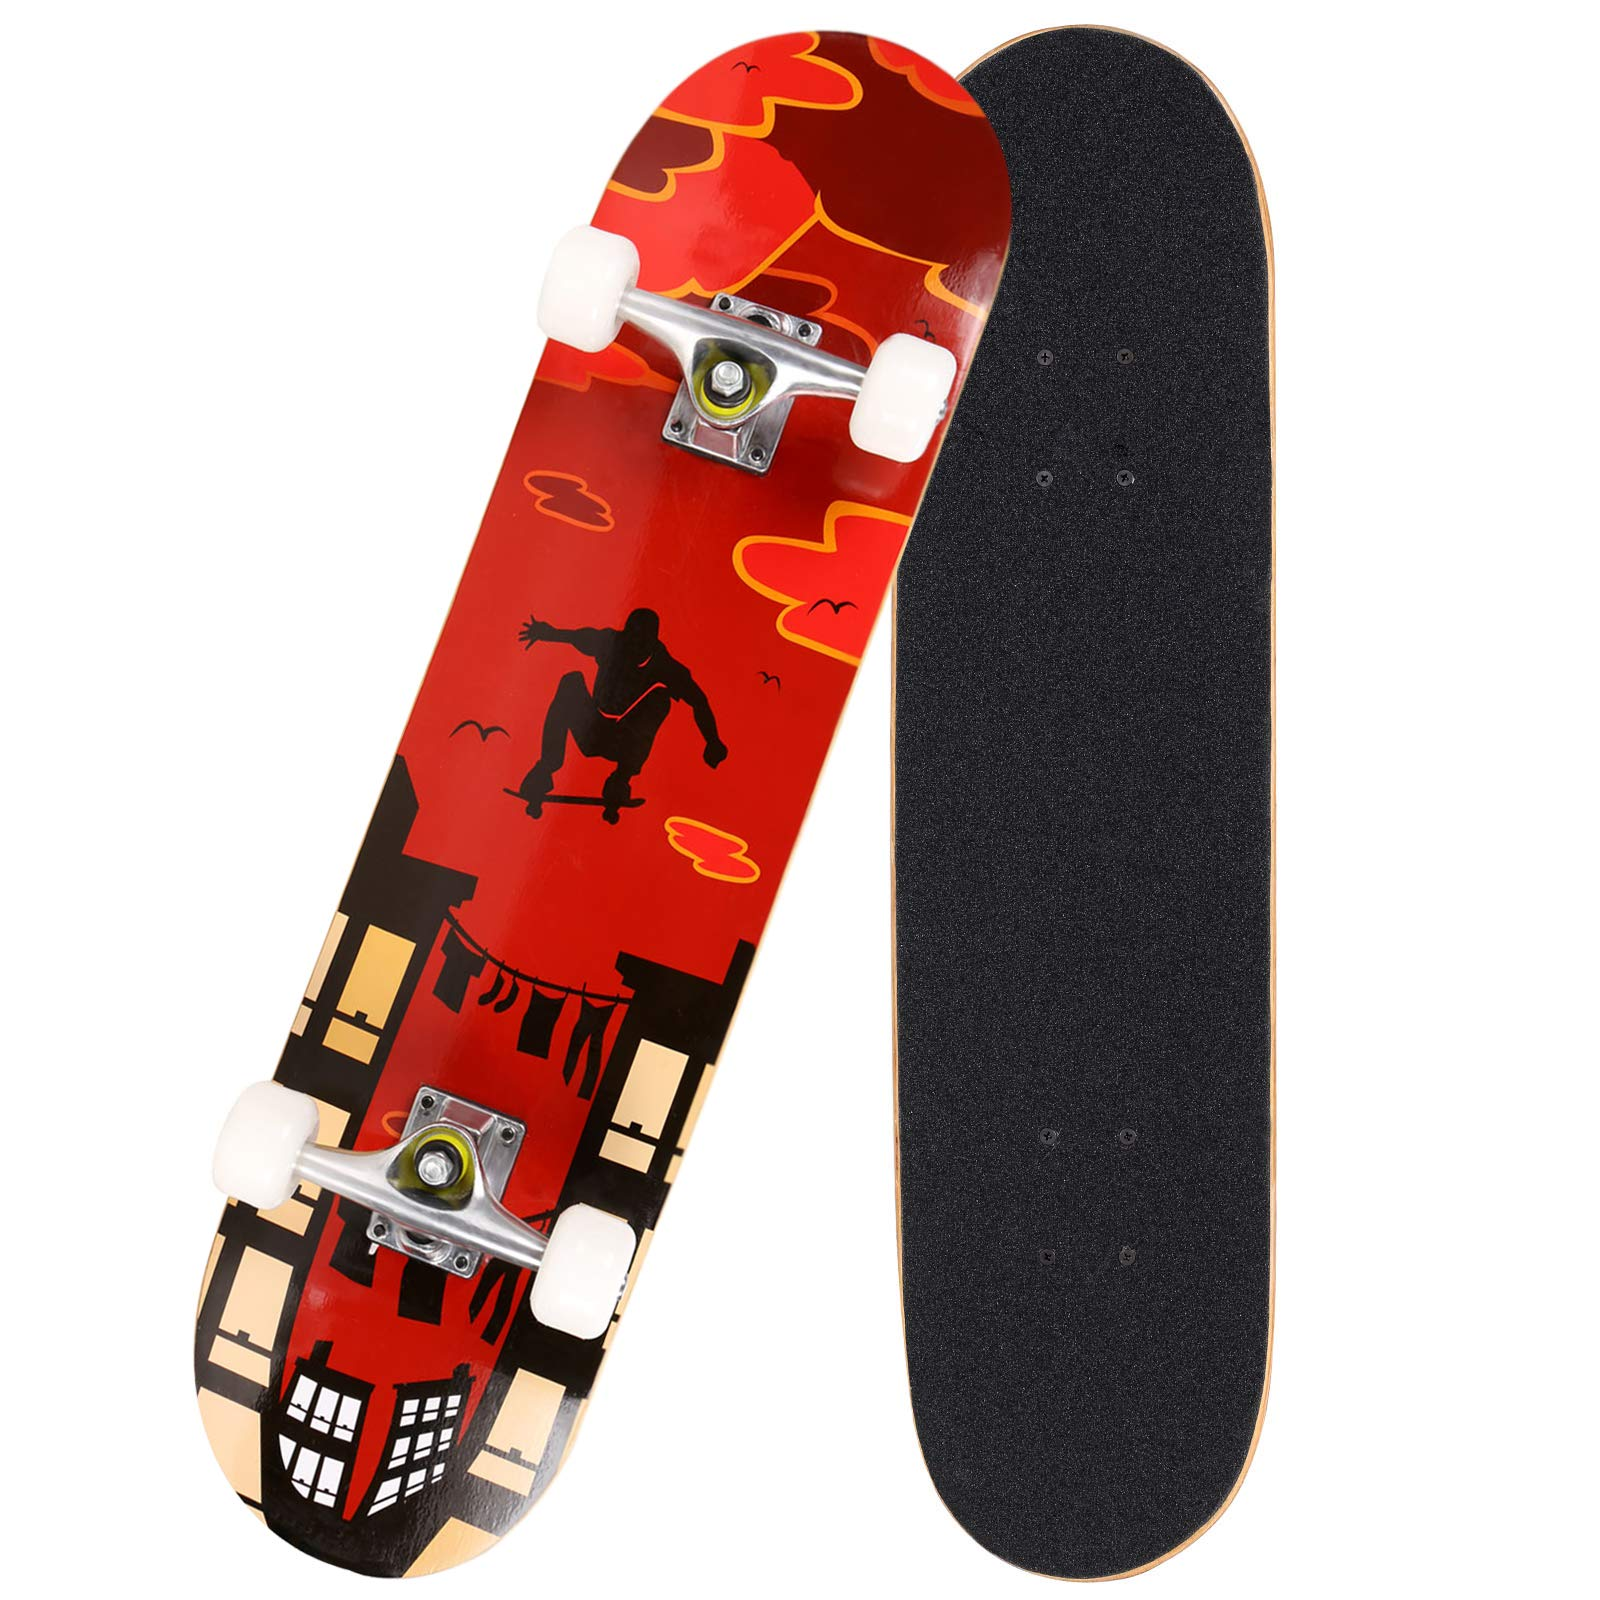 Hosmat 31'' Complete Pro Skateboard 7 Layer Canadian Maple Wood Skateboard Deck with Double Kick Concave Design for Kids & Adults Beginner - Age 5 Up (Type2-Red)